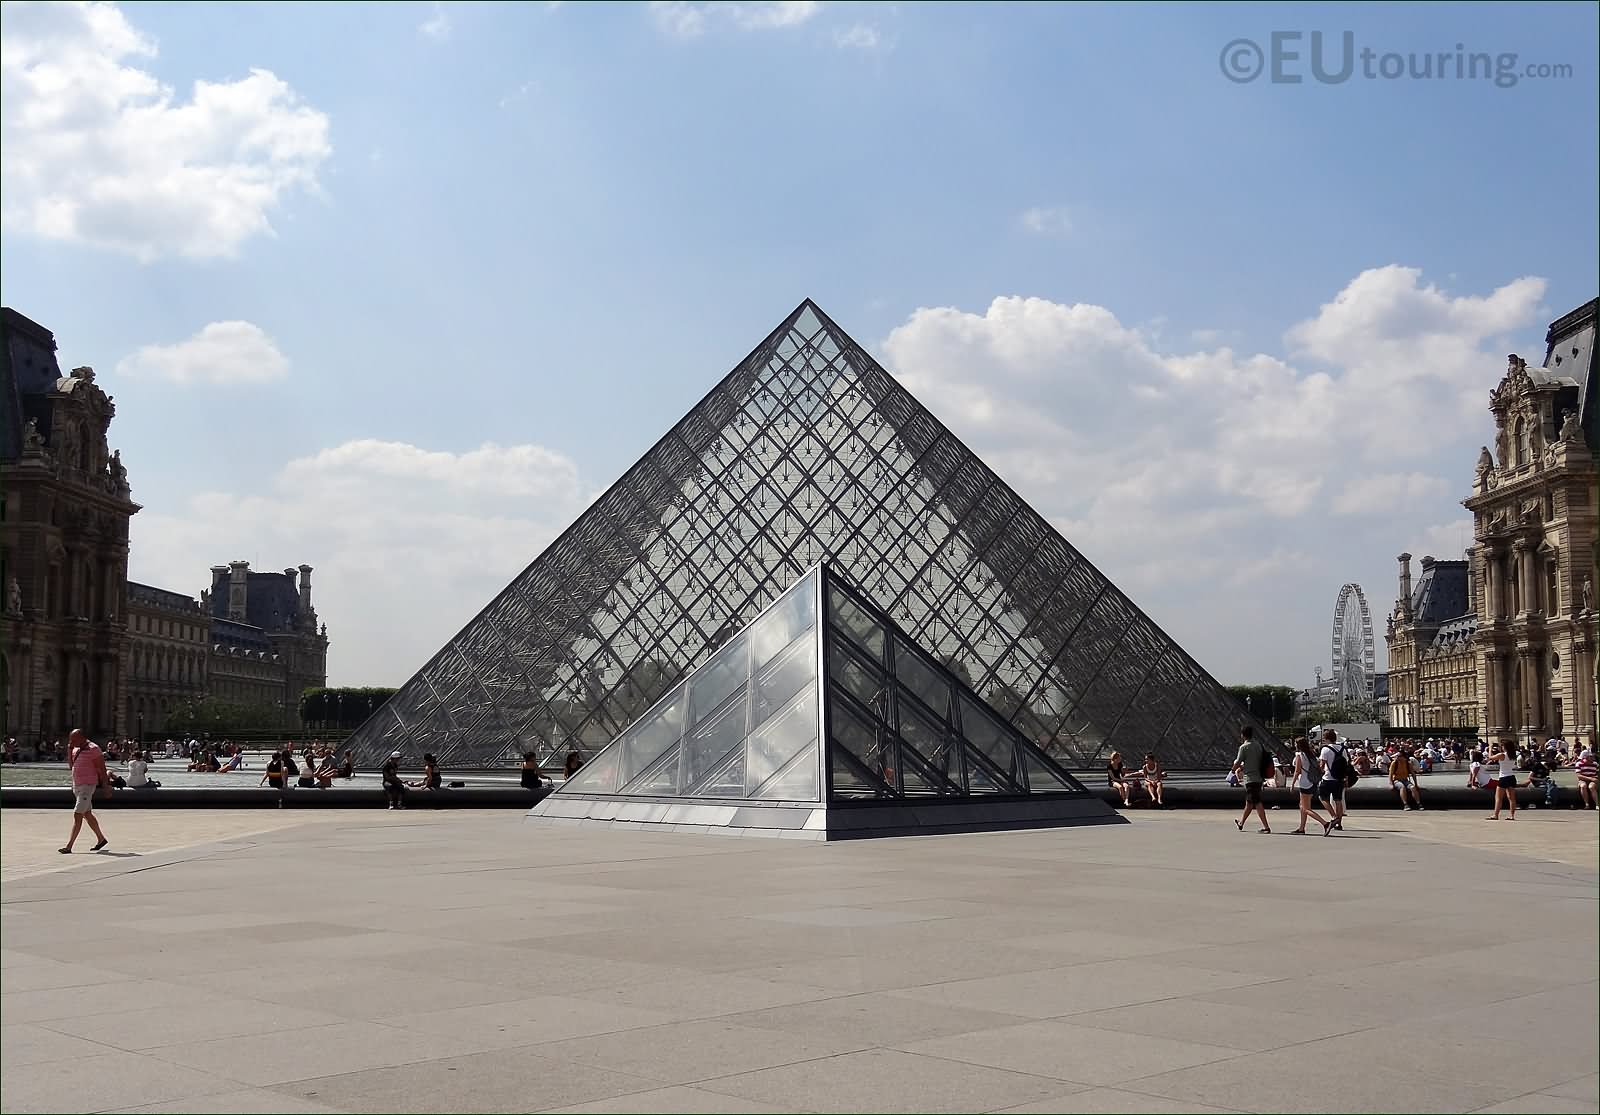 Glass Pyramid At The Louvre Museum